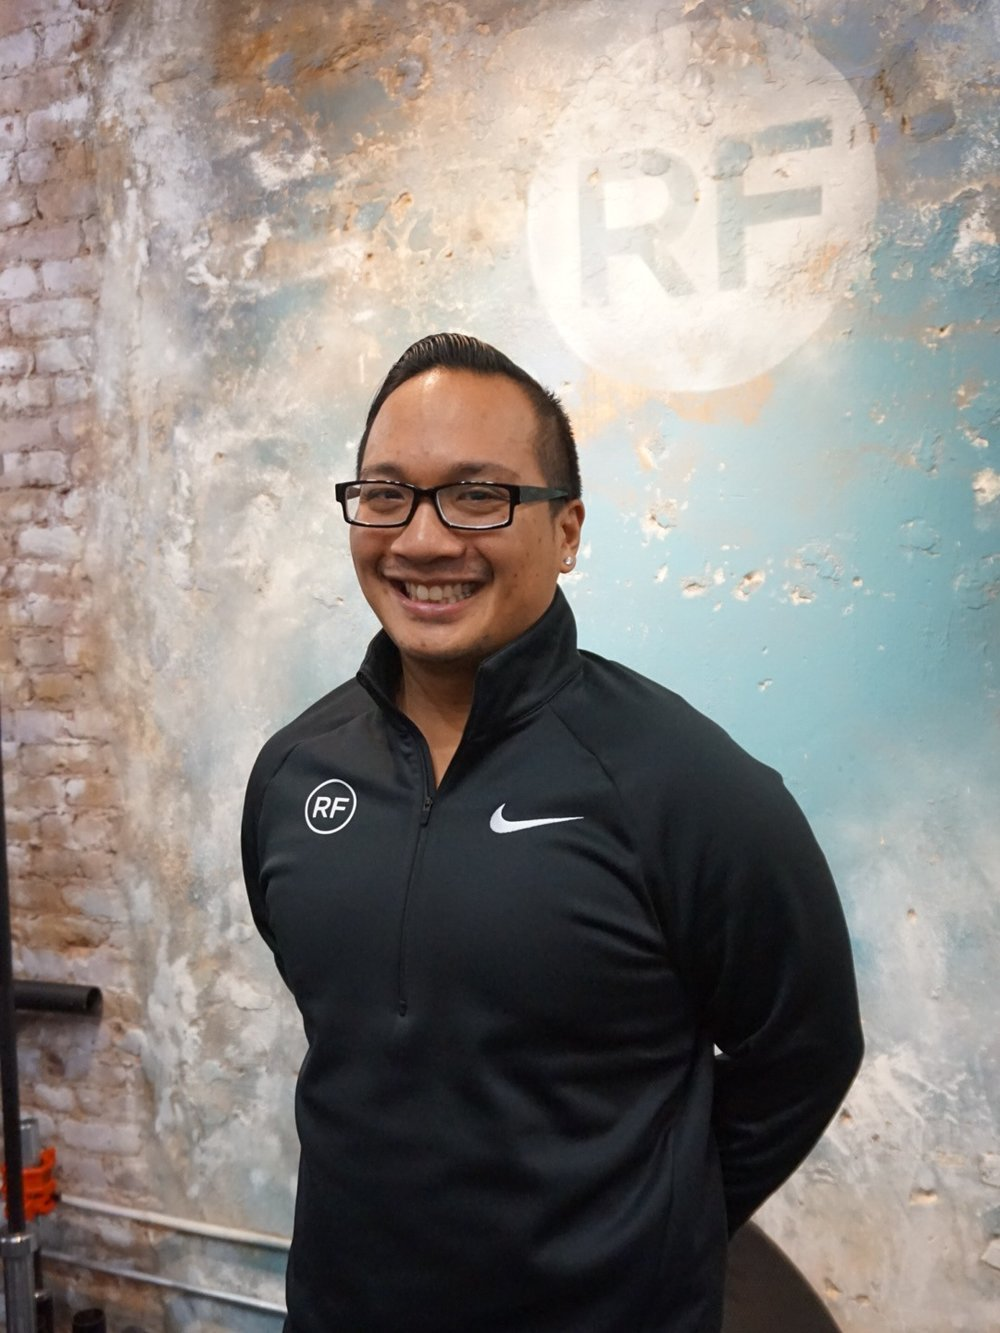 RANDY - MANAGER AT REMORCA FITNESS GRAMERCYCERTIFICATIONS:EDUCATION:SPECIALTY/EXPERTISE:FITNESS HOBBIES:NON FITNESS THING ABOUT ME